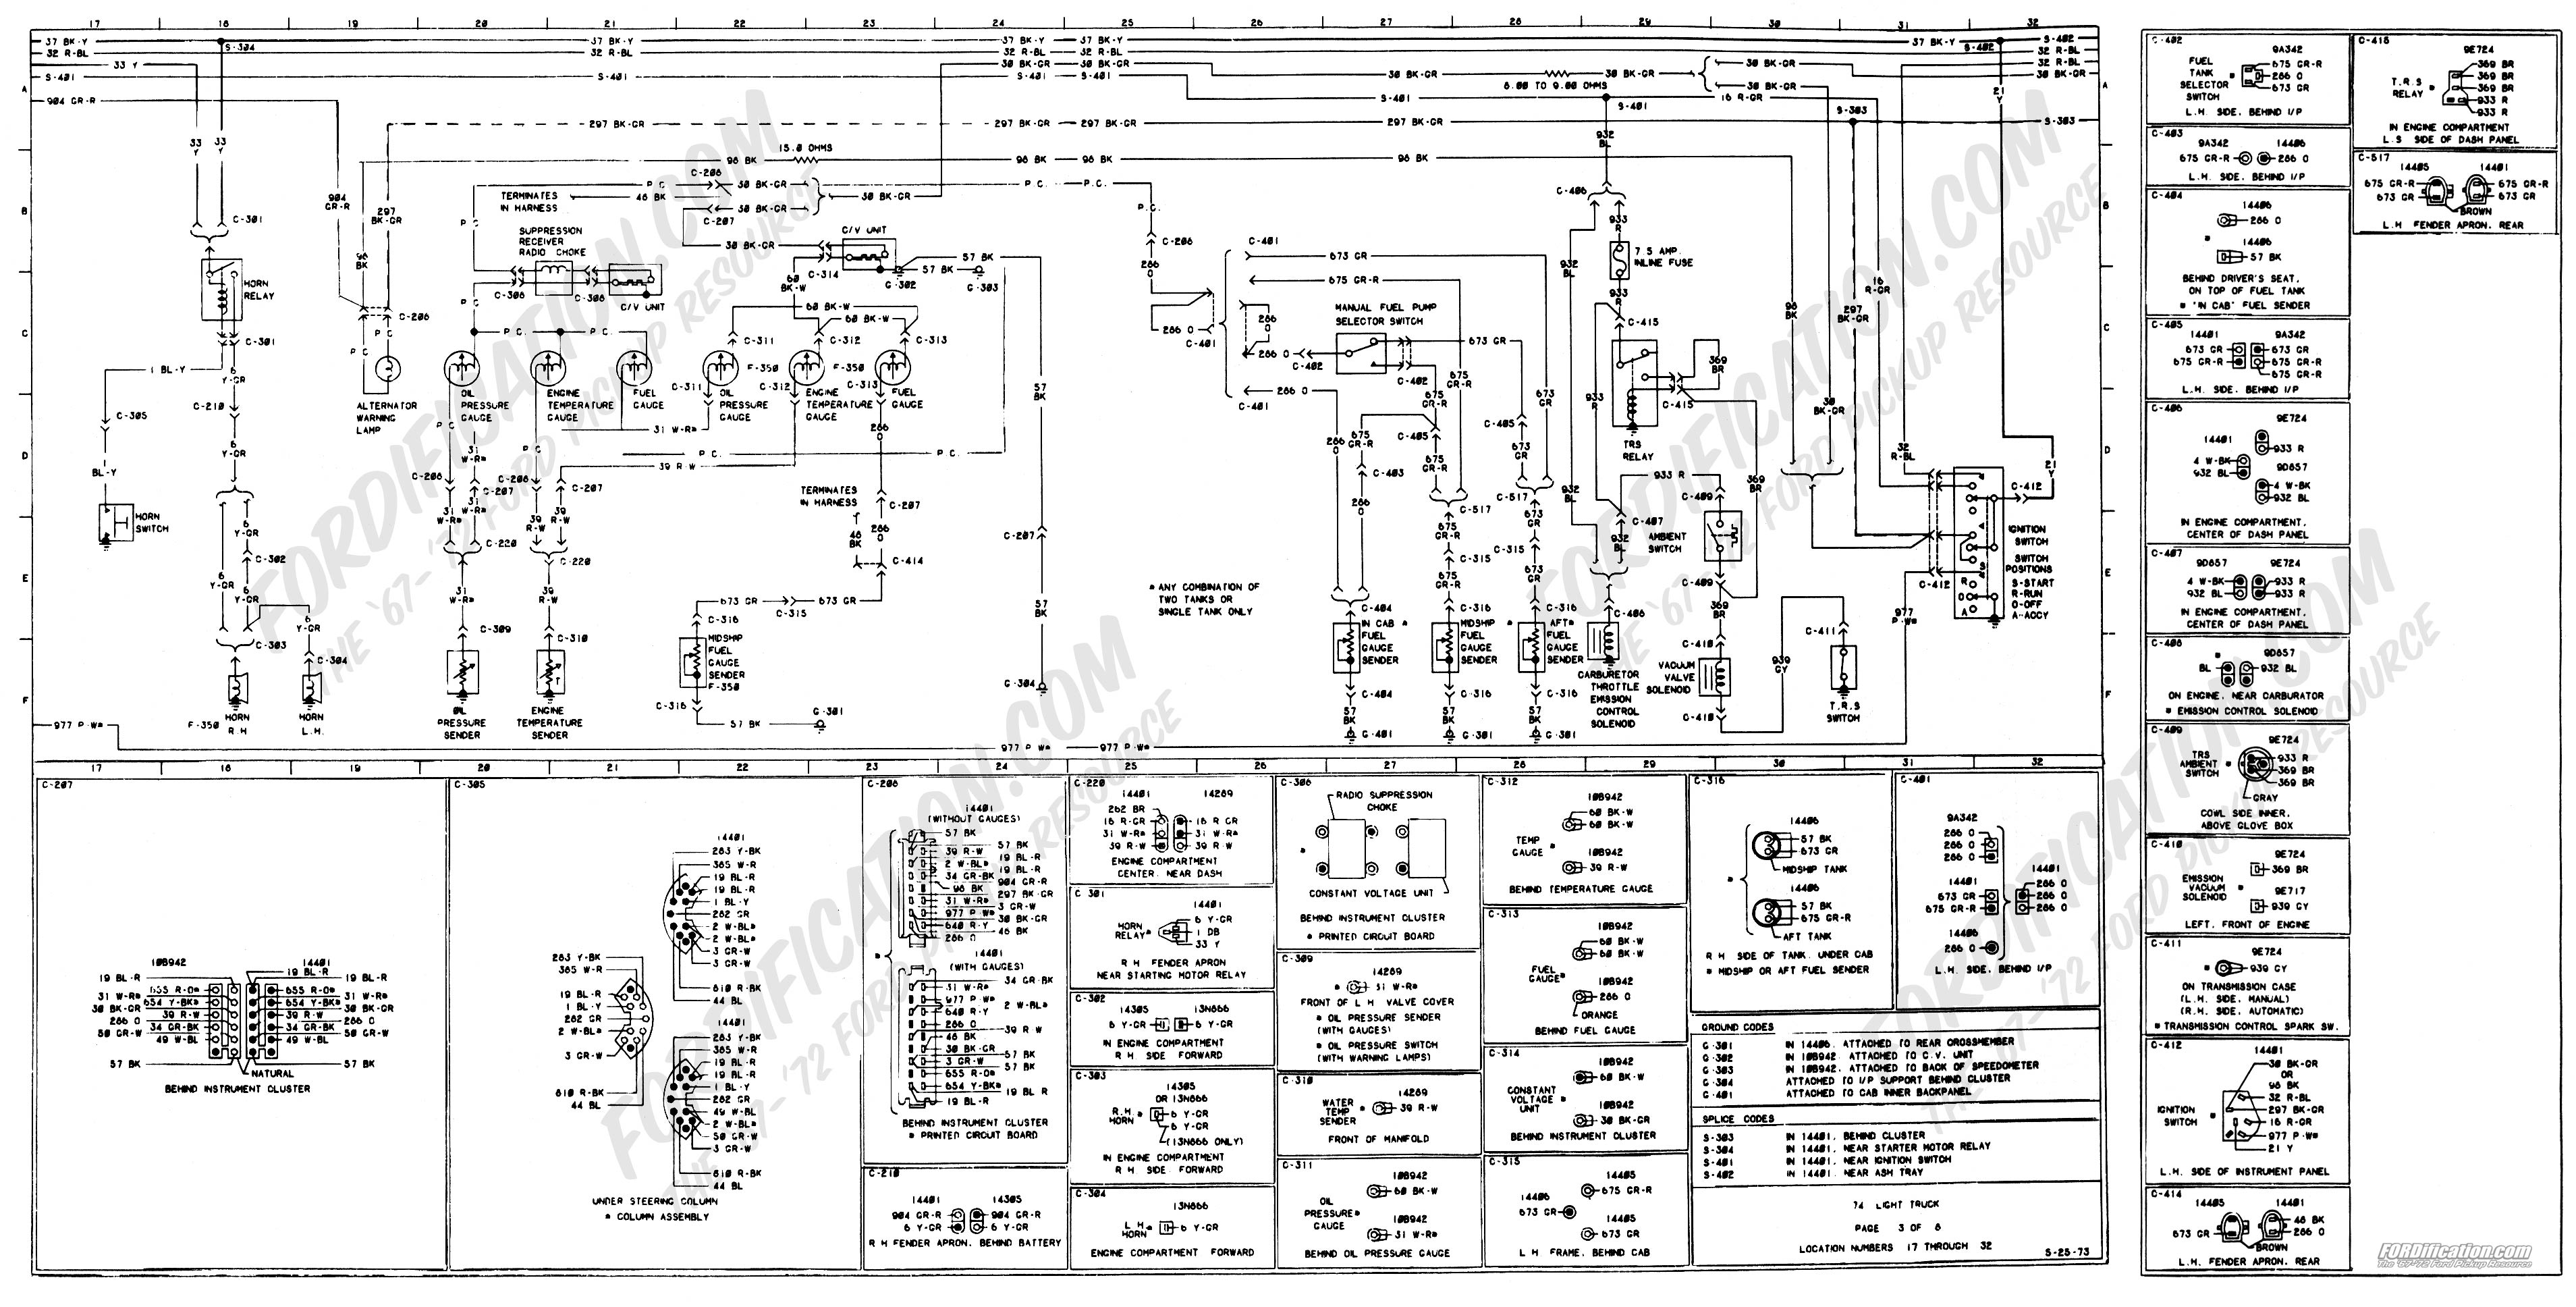 wiring_74master_3of8 ford wiring harness diagrams ford wiring diagrams instruction 6.0 powerstroke injector wiring harness at crackthecode.co